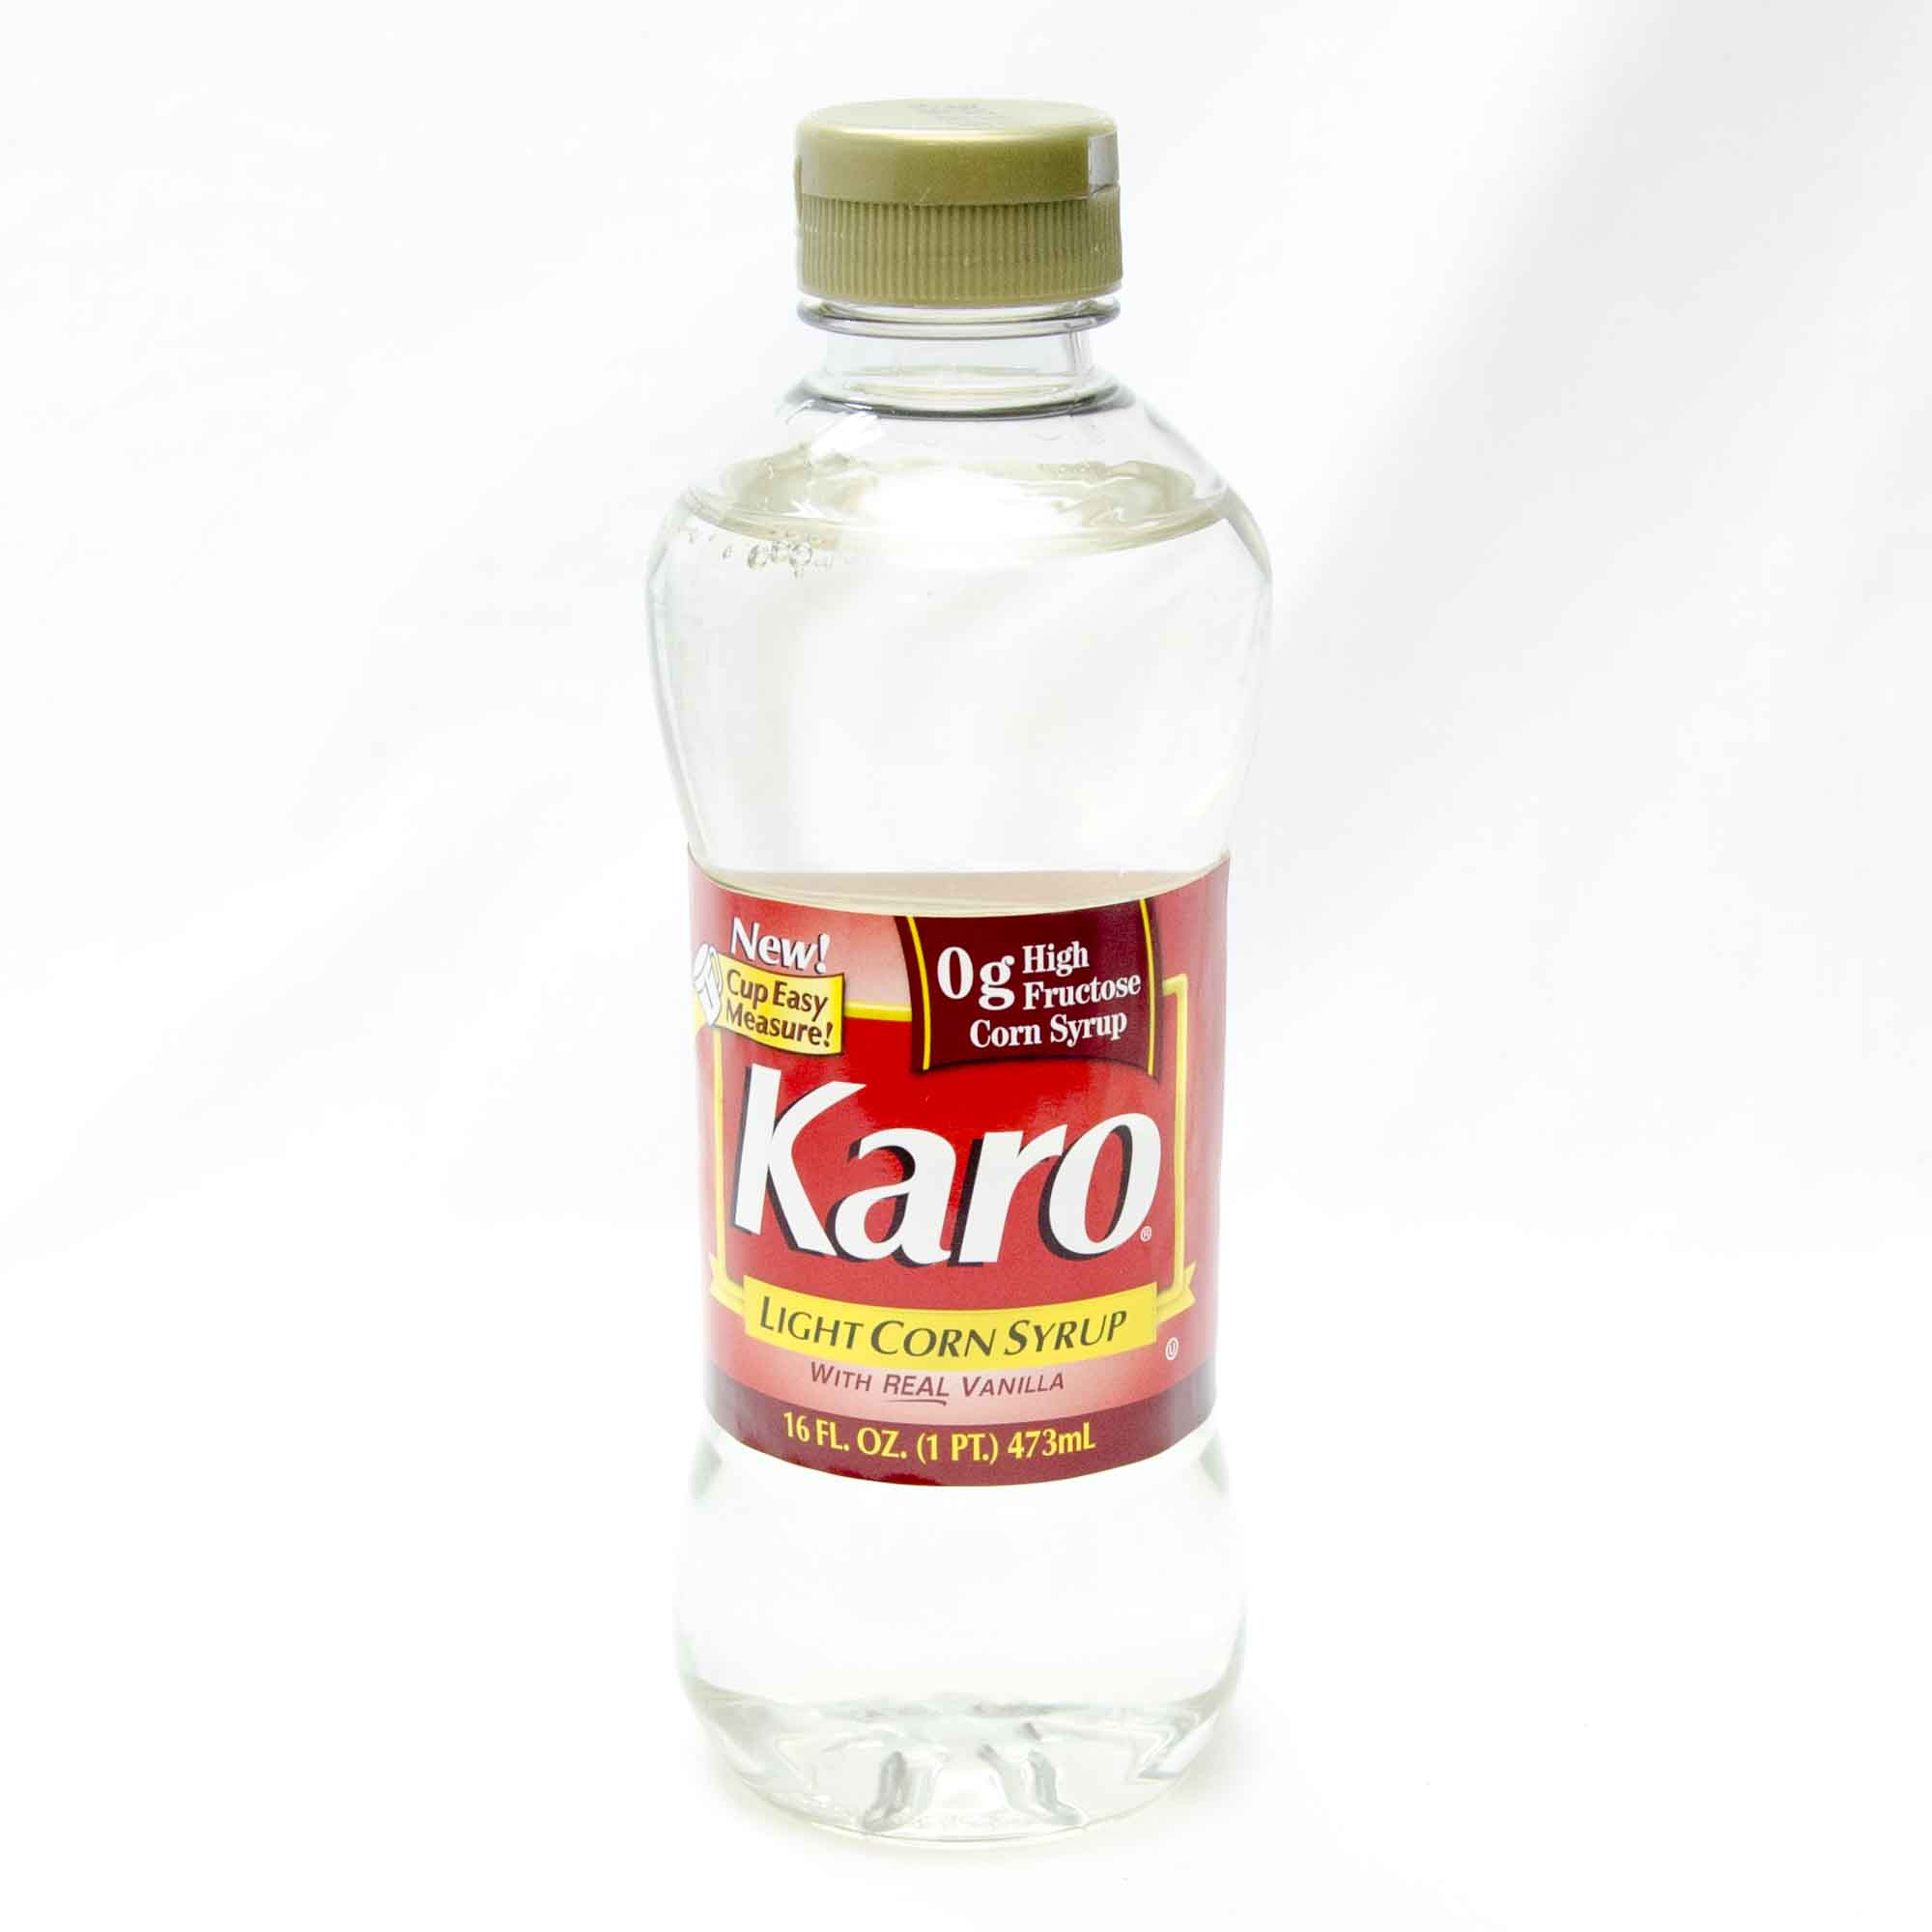 Karo Light Corn Syrup - 16oz (473ml) Bottle | Lollipop ...